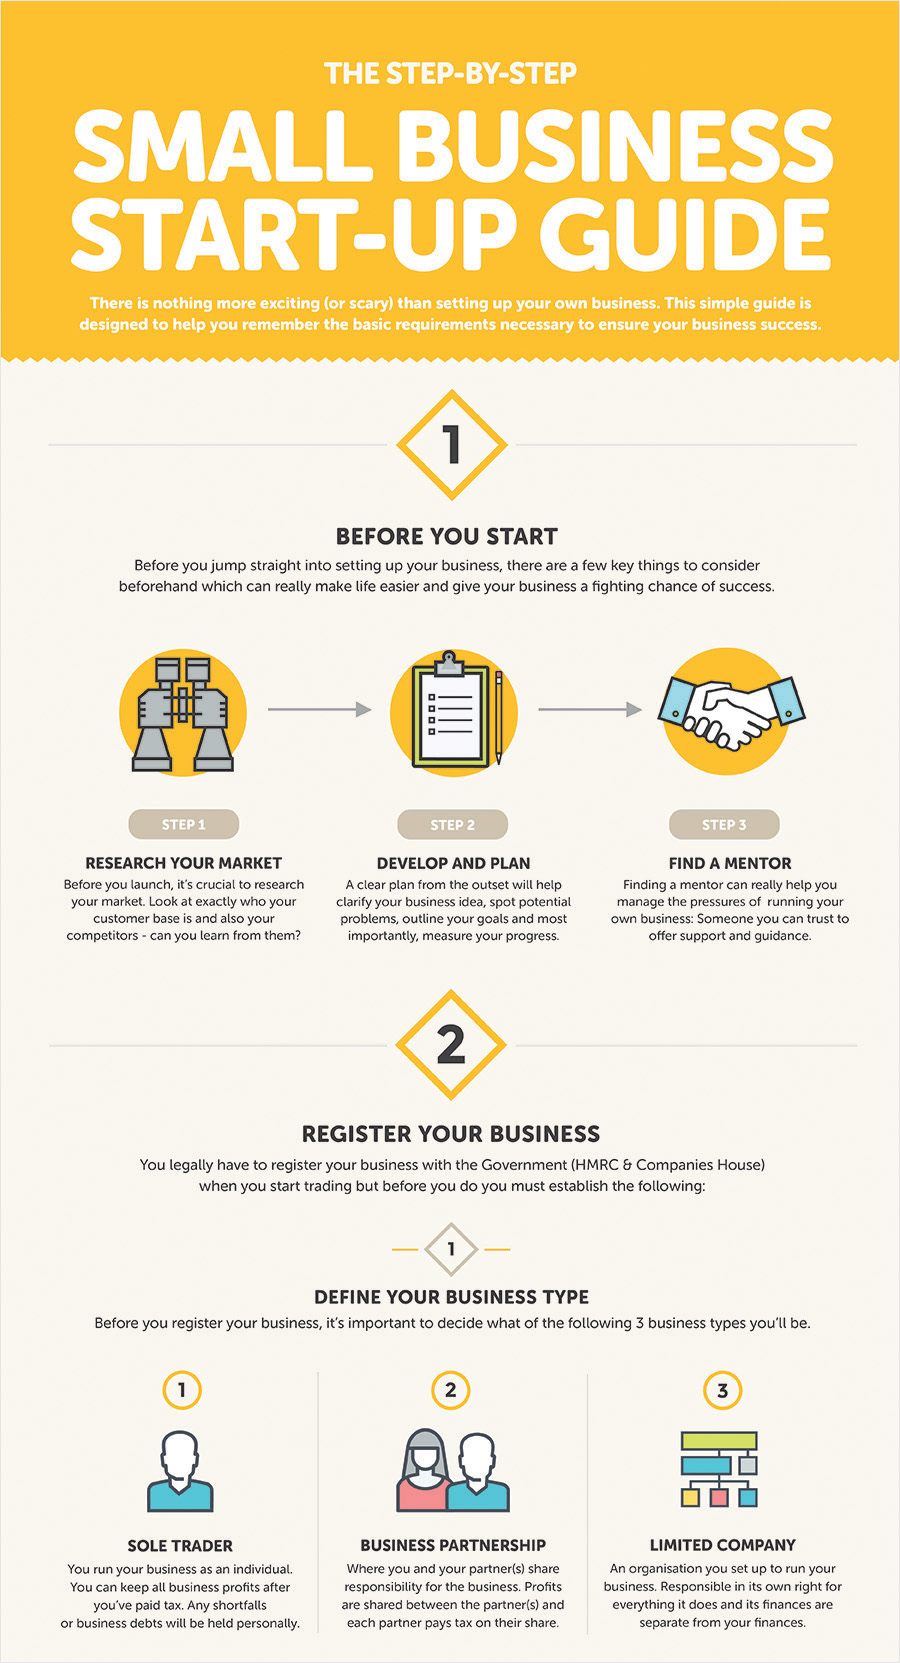 40-Infographic-Ideas-to-Jumpstart-your-Creativity-Startups-and-Entrepreneurs-small-business-startup-guide